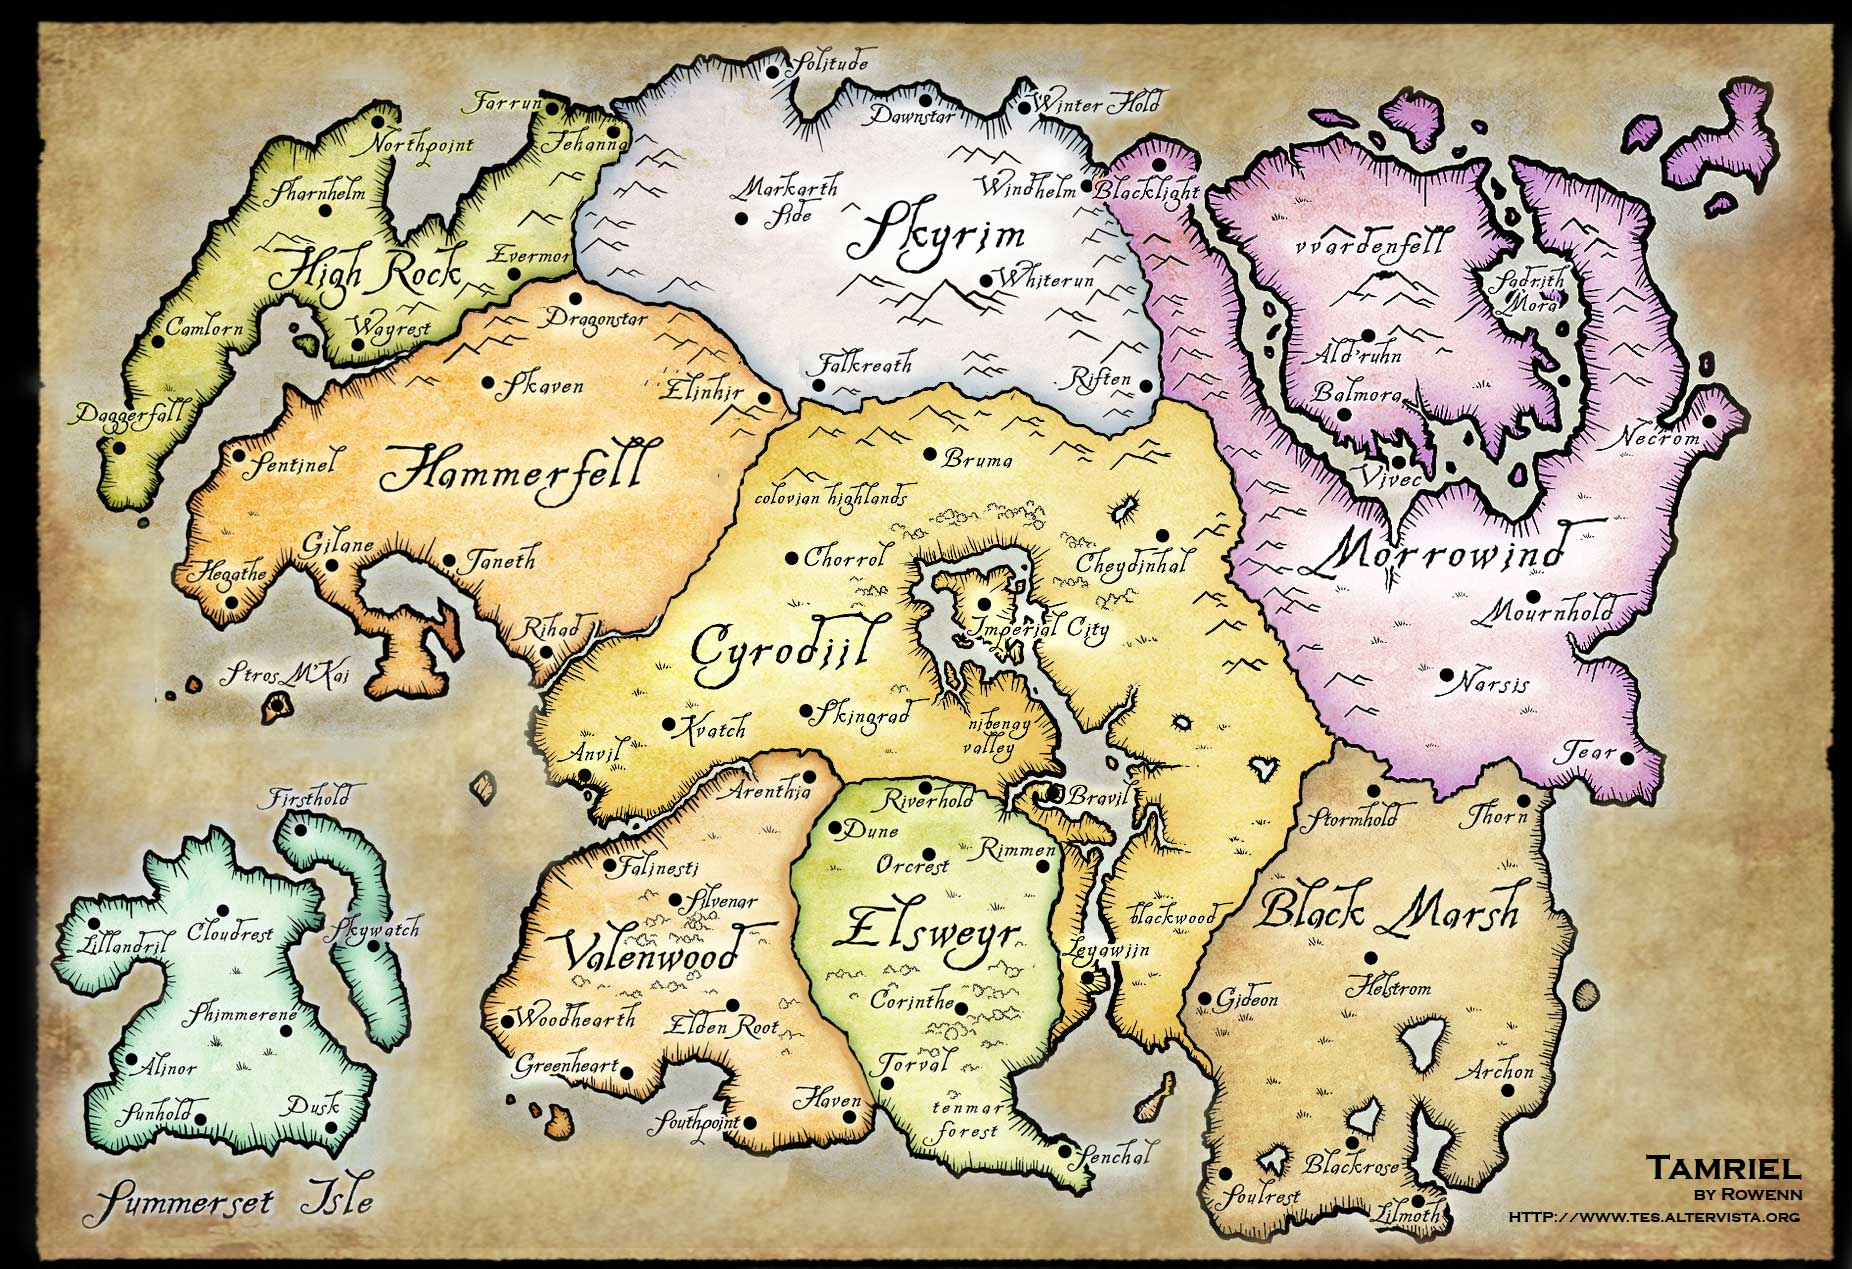 Skyrim World Map Skyrim Map   Over 25 Different Maps of Skyrim to Map Out Your Journey Skyrim World Map